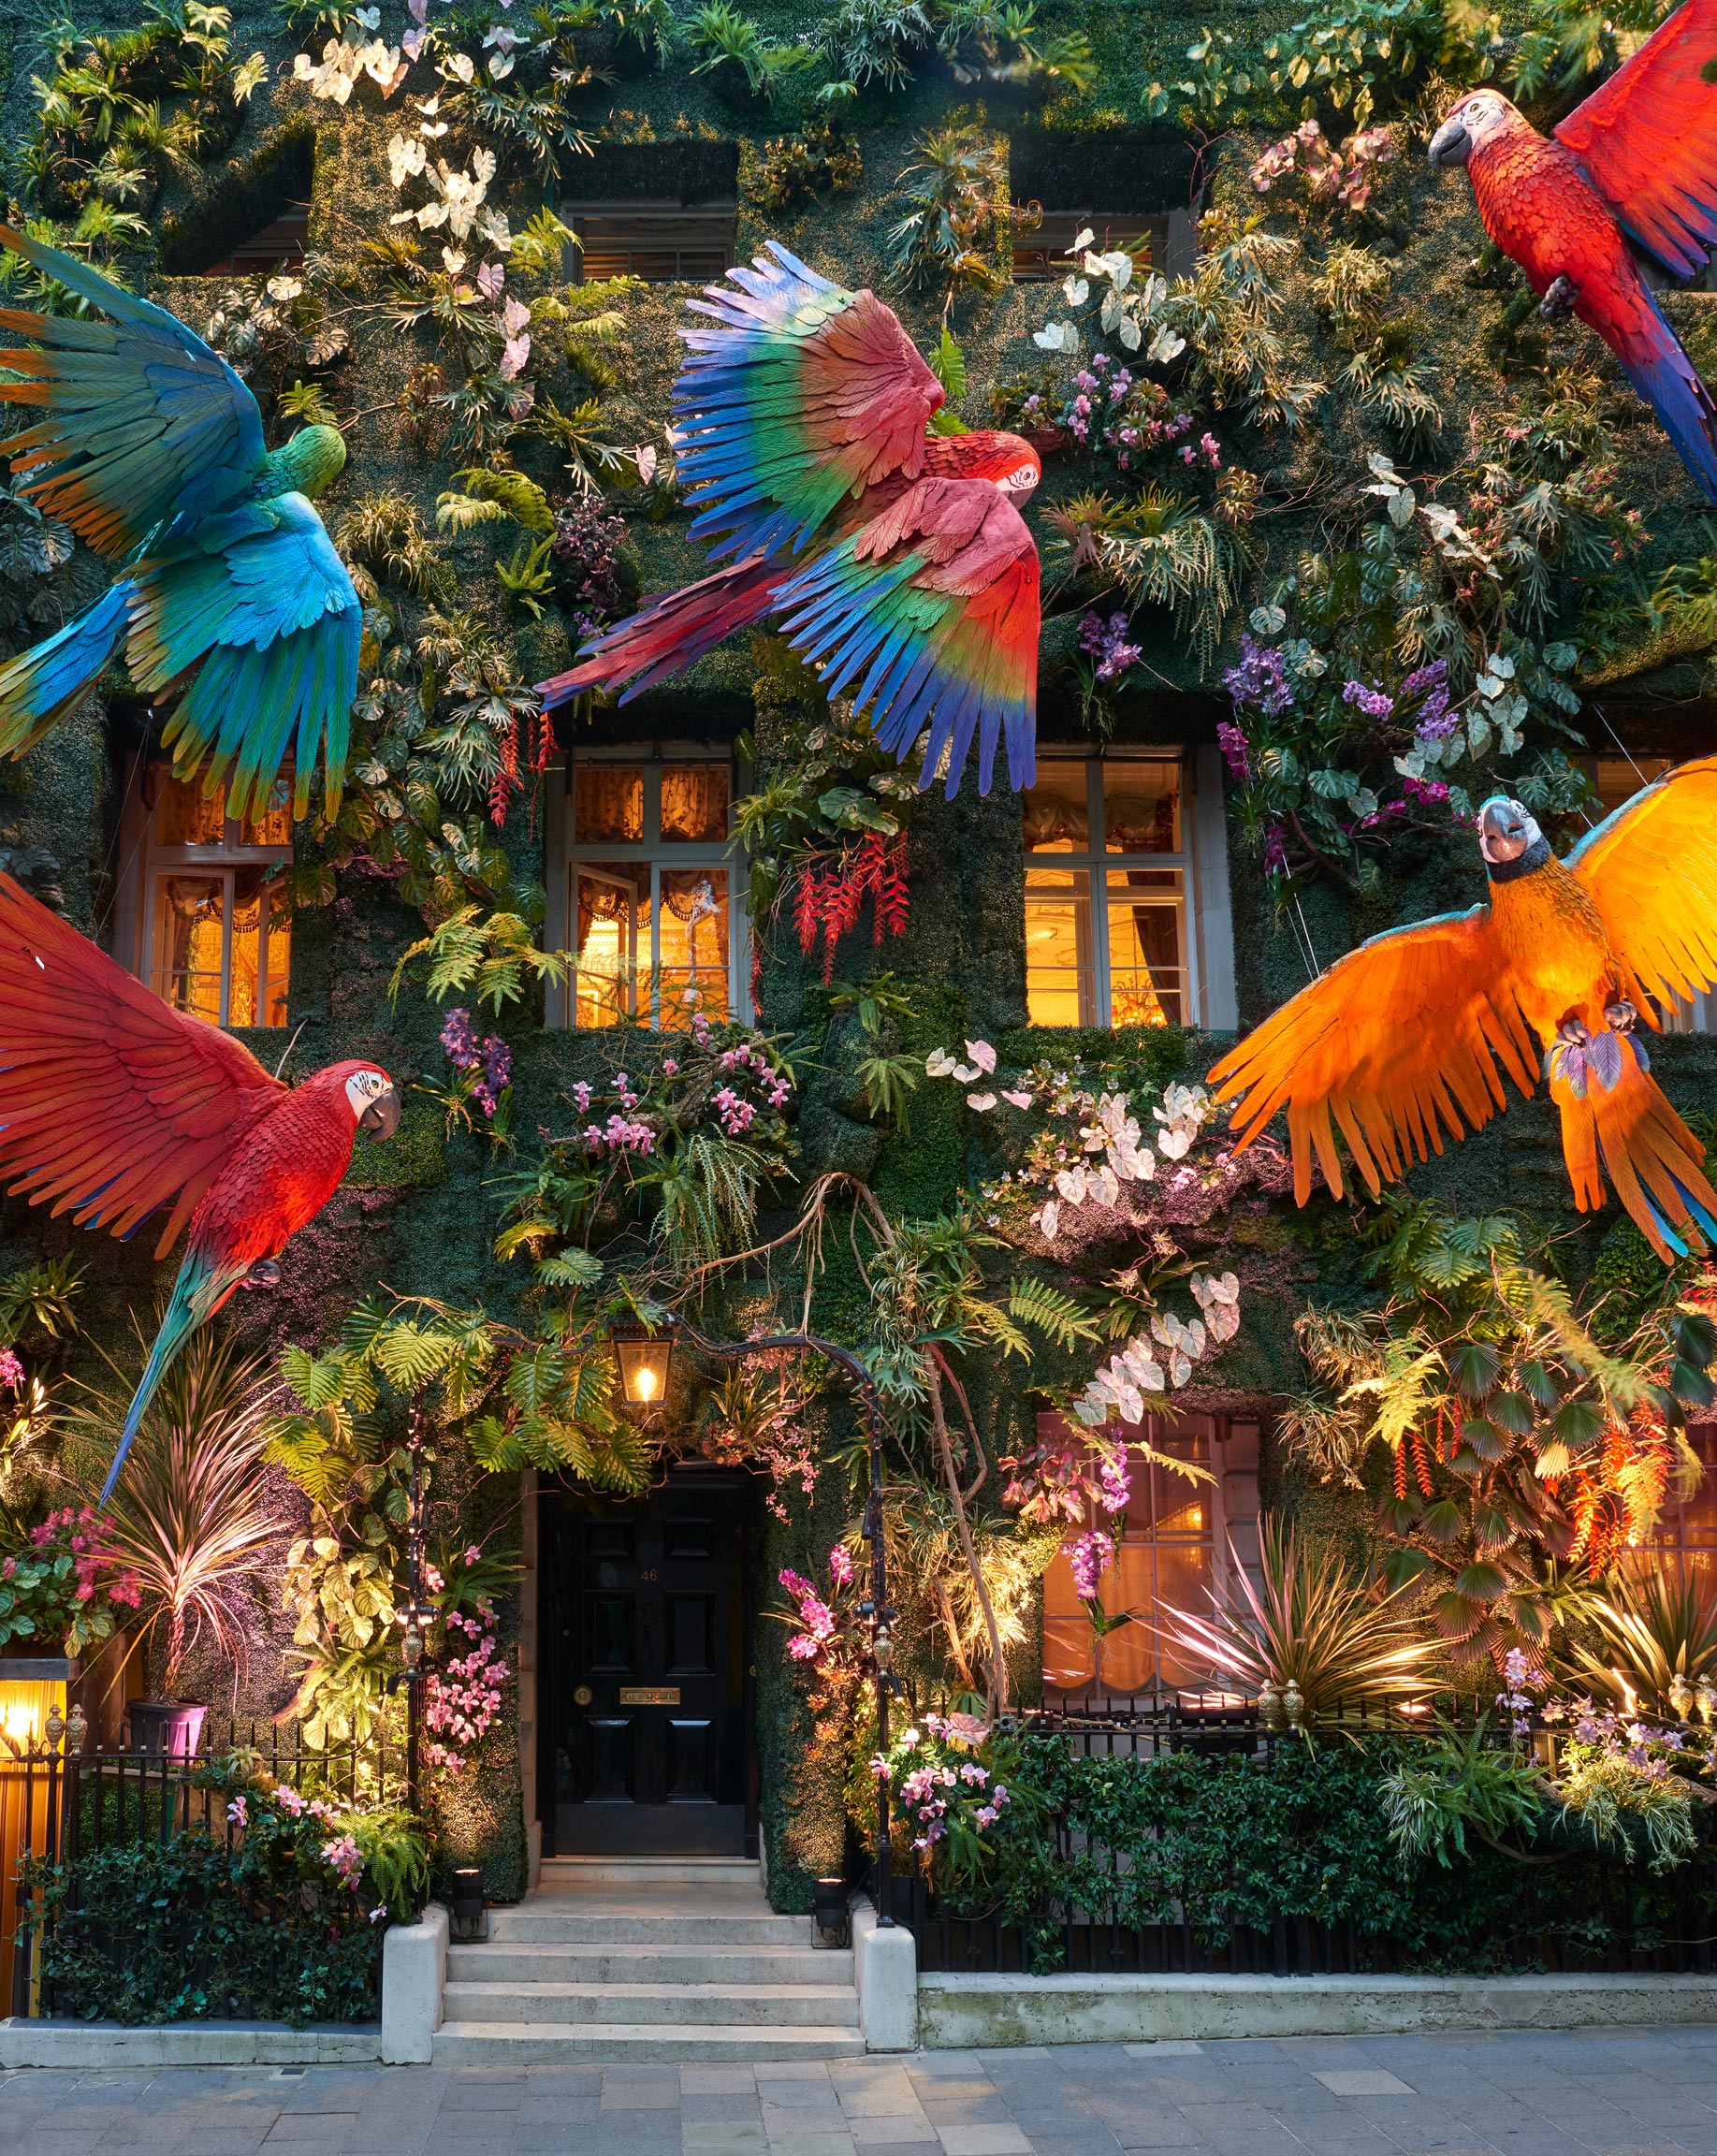 A Verdant Rainforest Lush with Plants and Giant Macaws Blankets Annabel's Facade in London